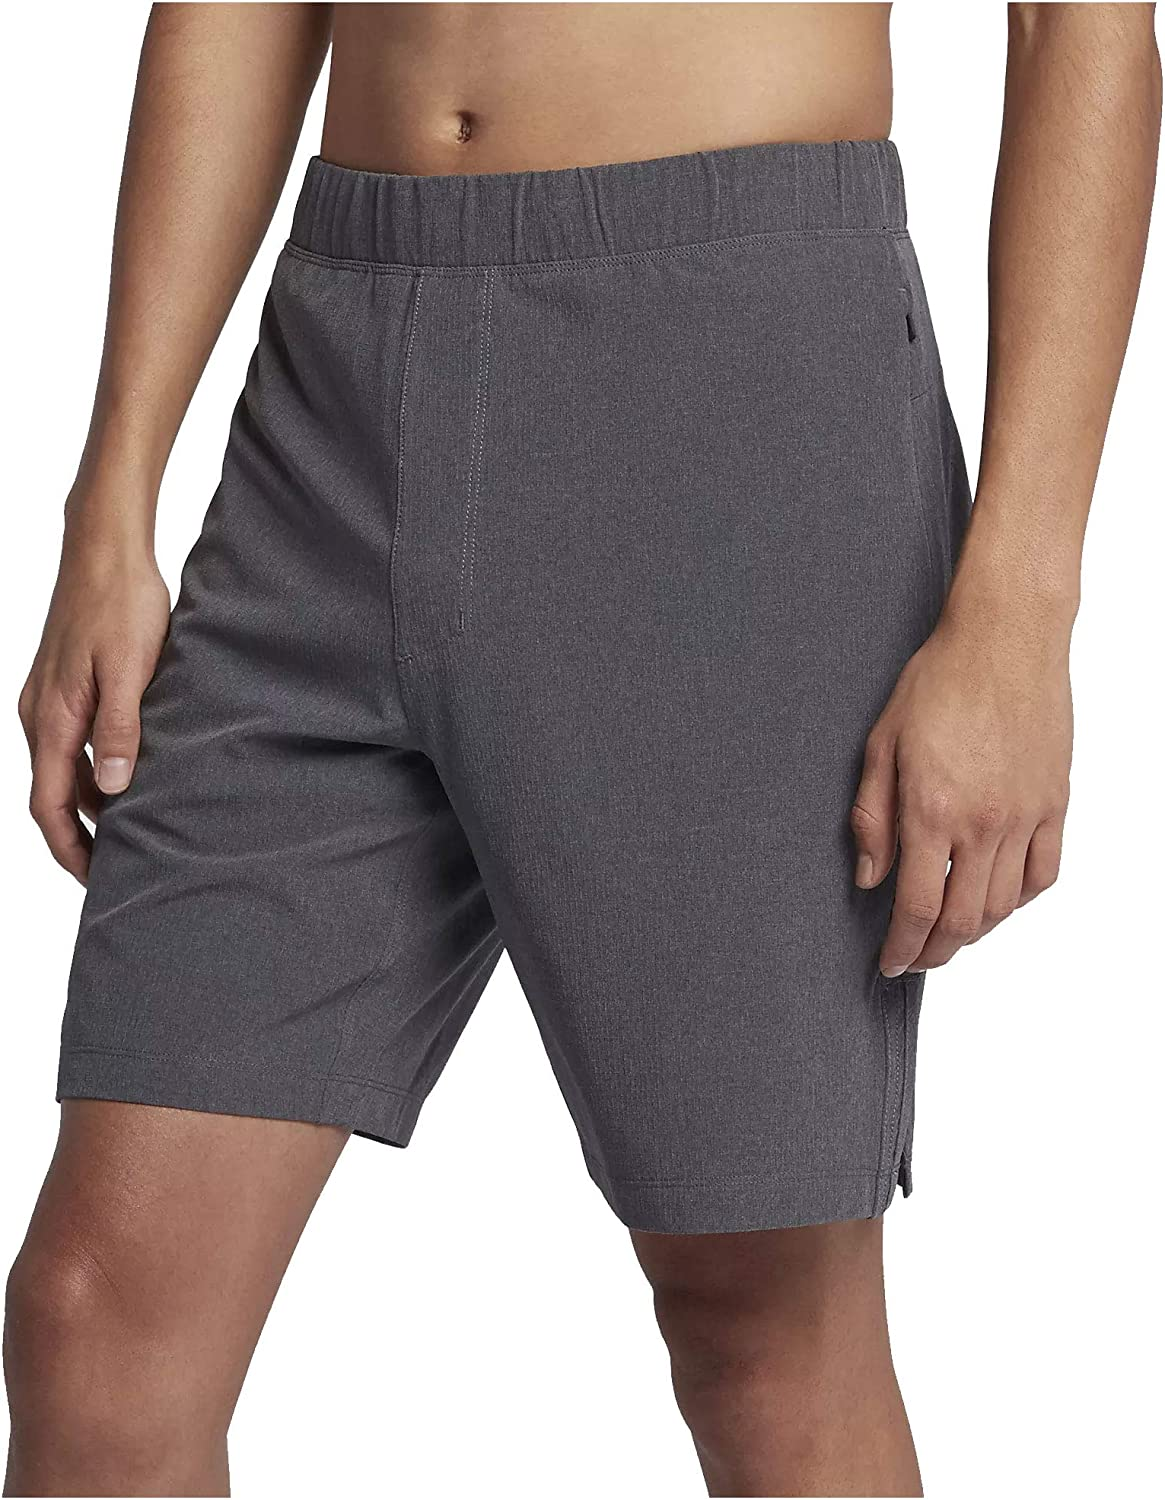 Hurley 895072 Men's Alpha Trainer Plus Short